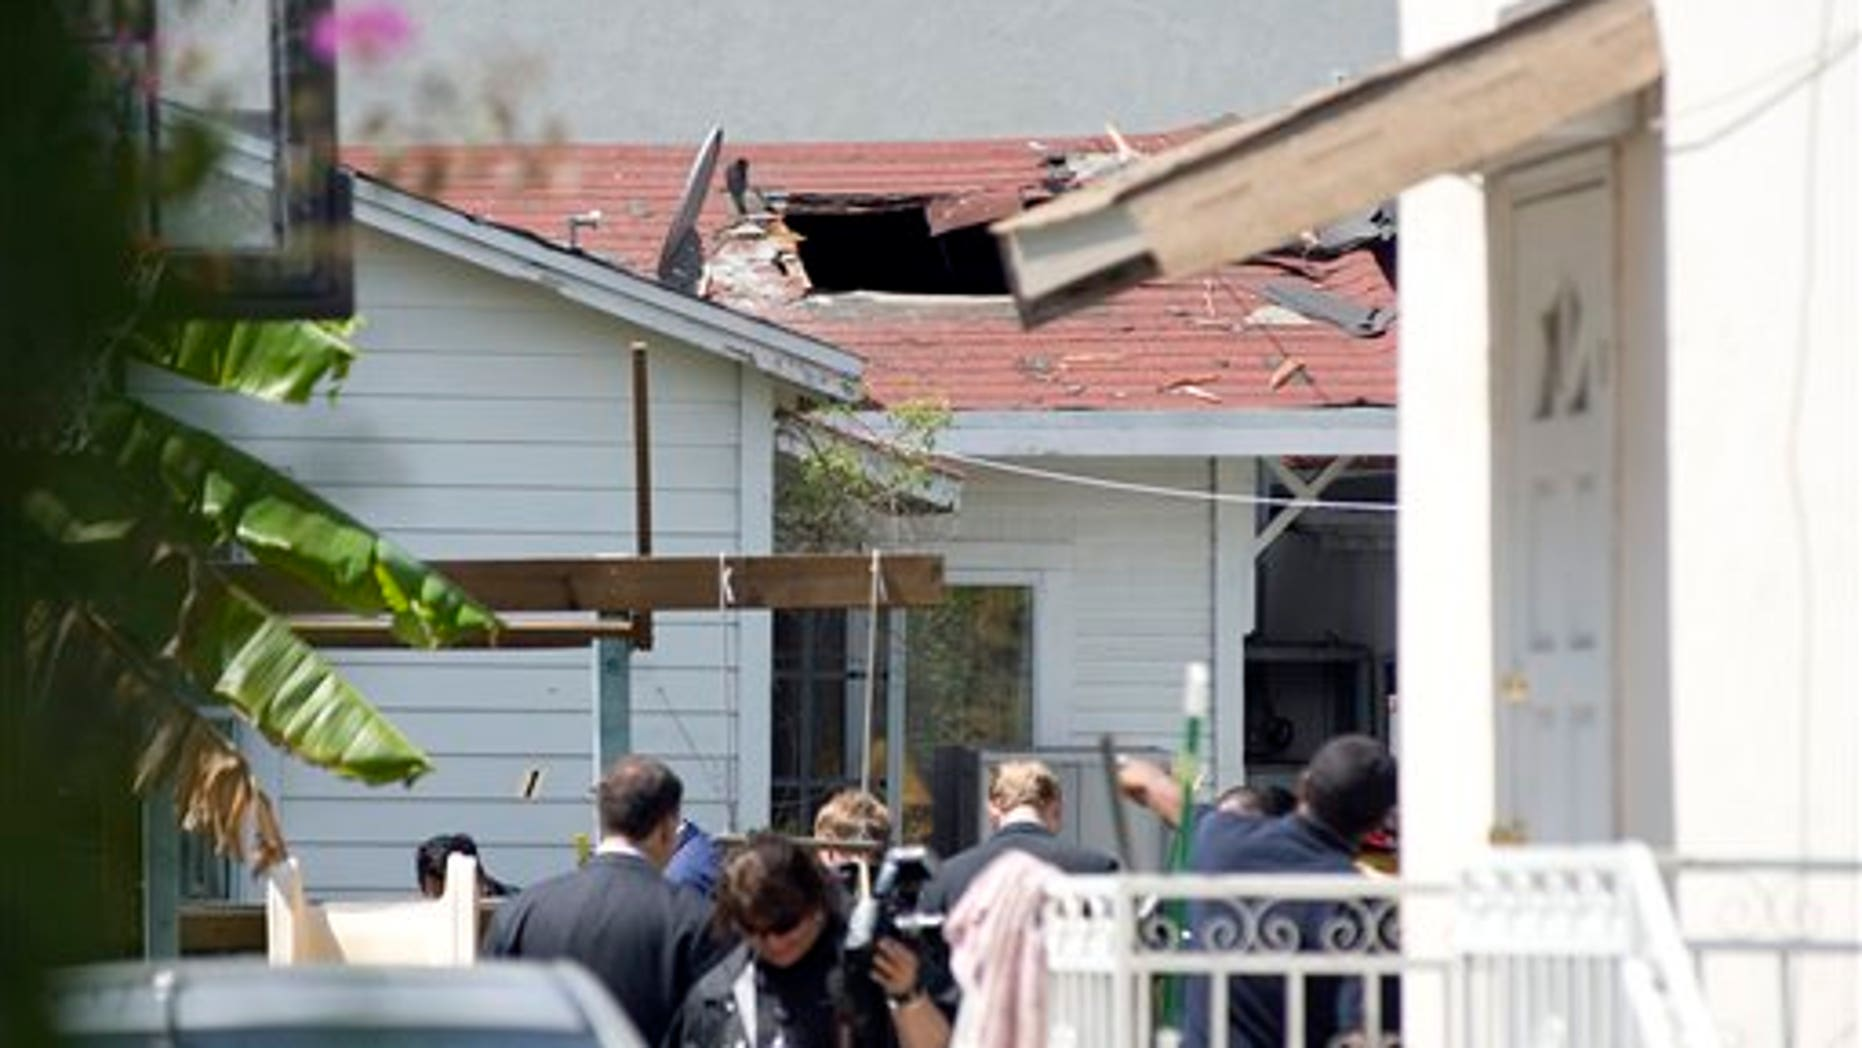 April 7: A large hole is left after police and firefighters removed a device from the roof of a home in Santa Monica, California.